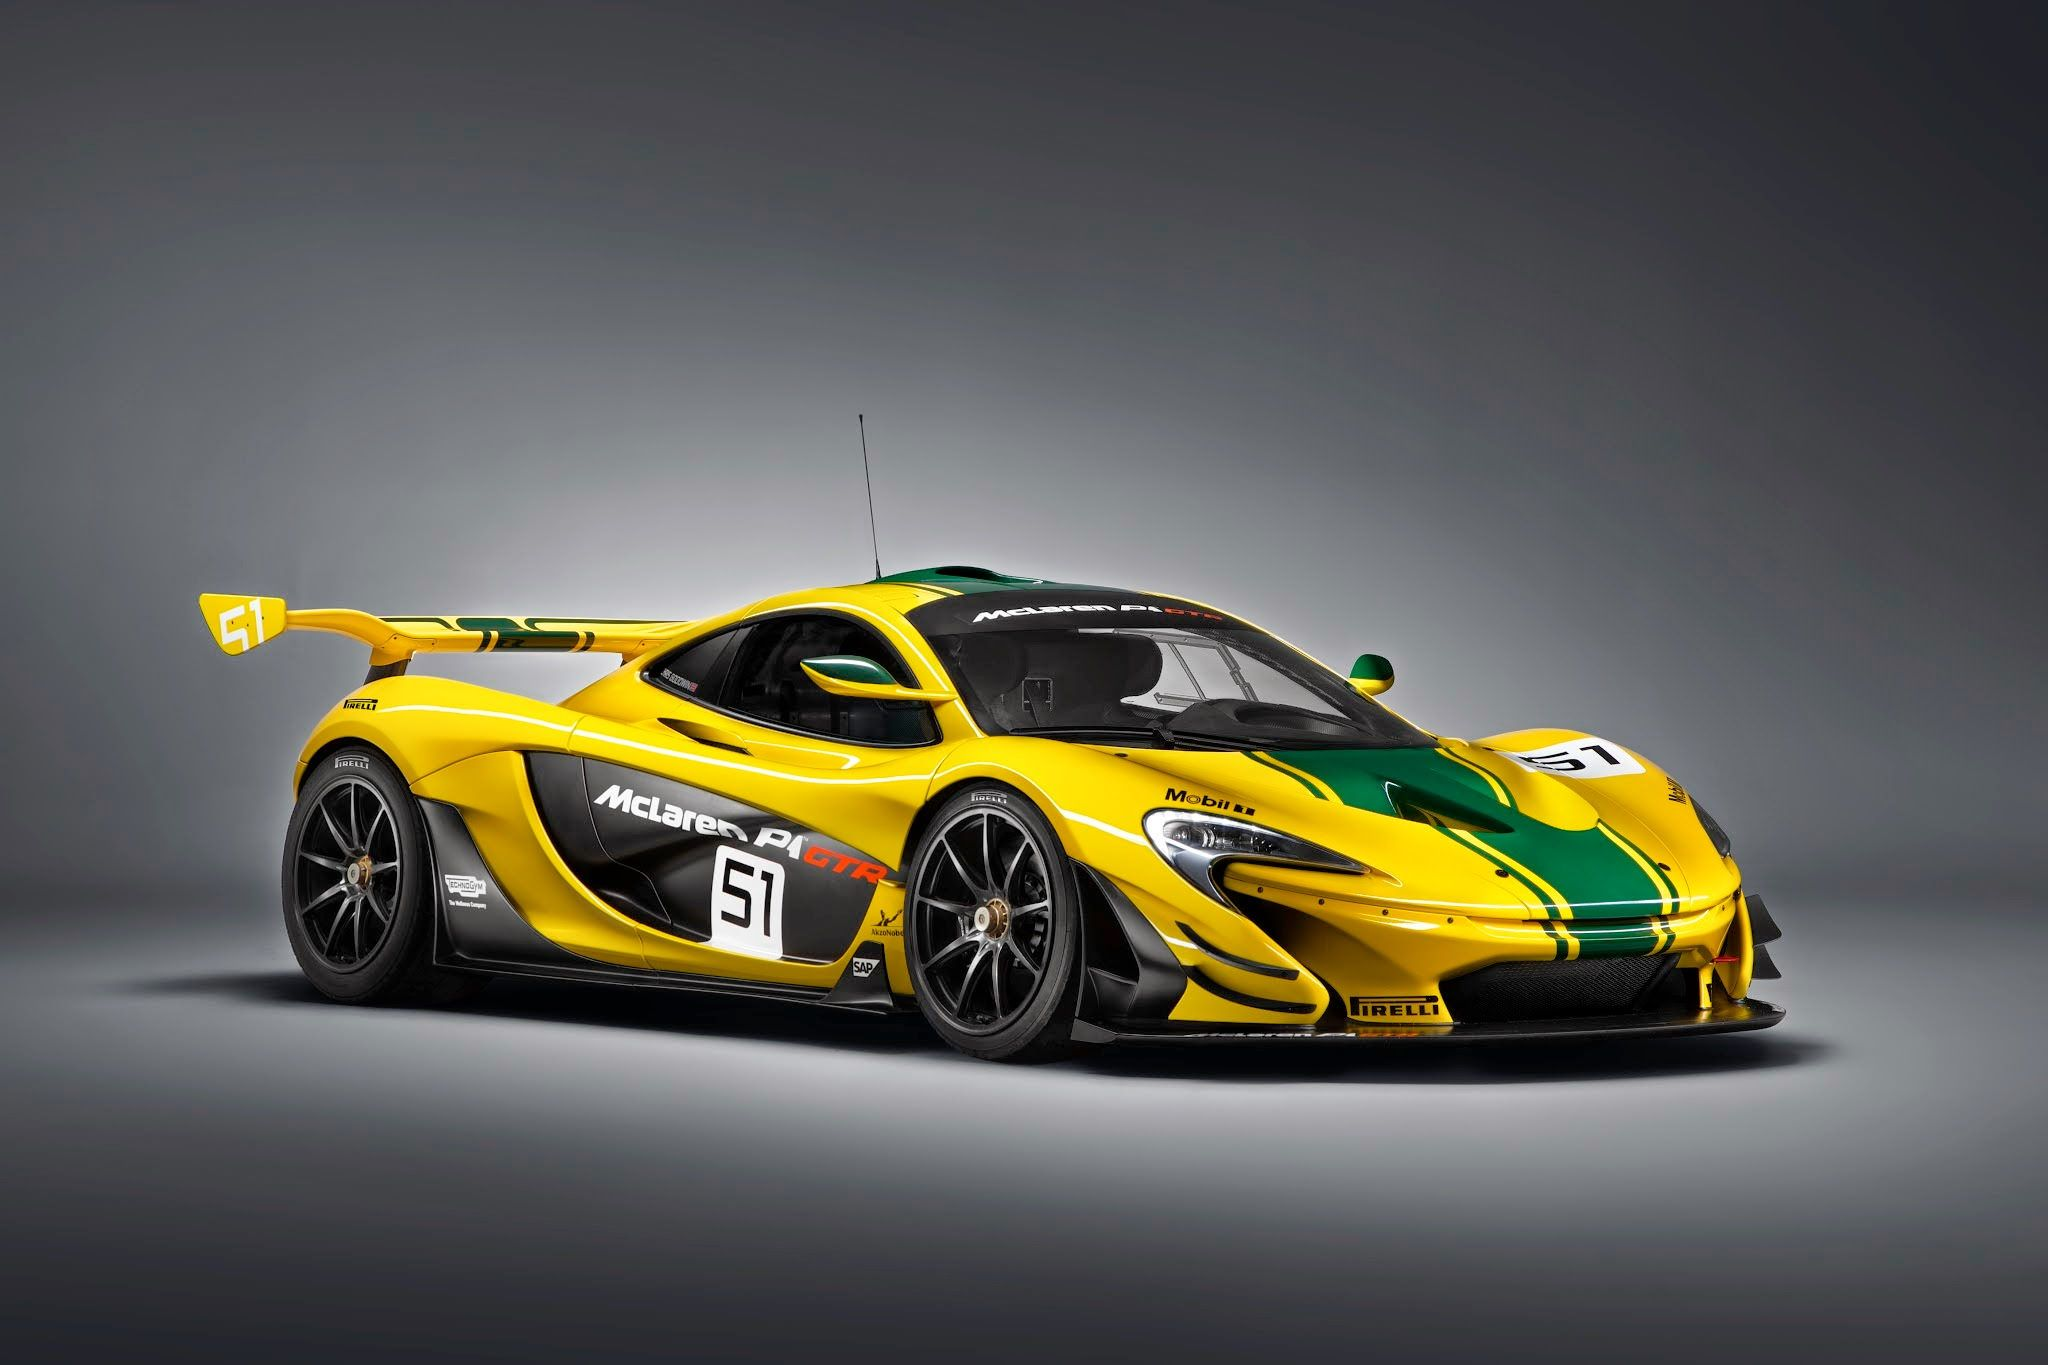 Mclaren P1 Gtr Production Version Wearing Yellow And Green Livery